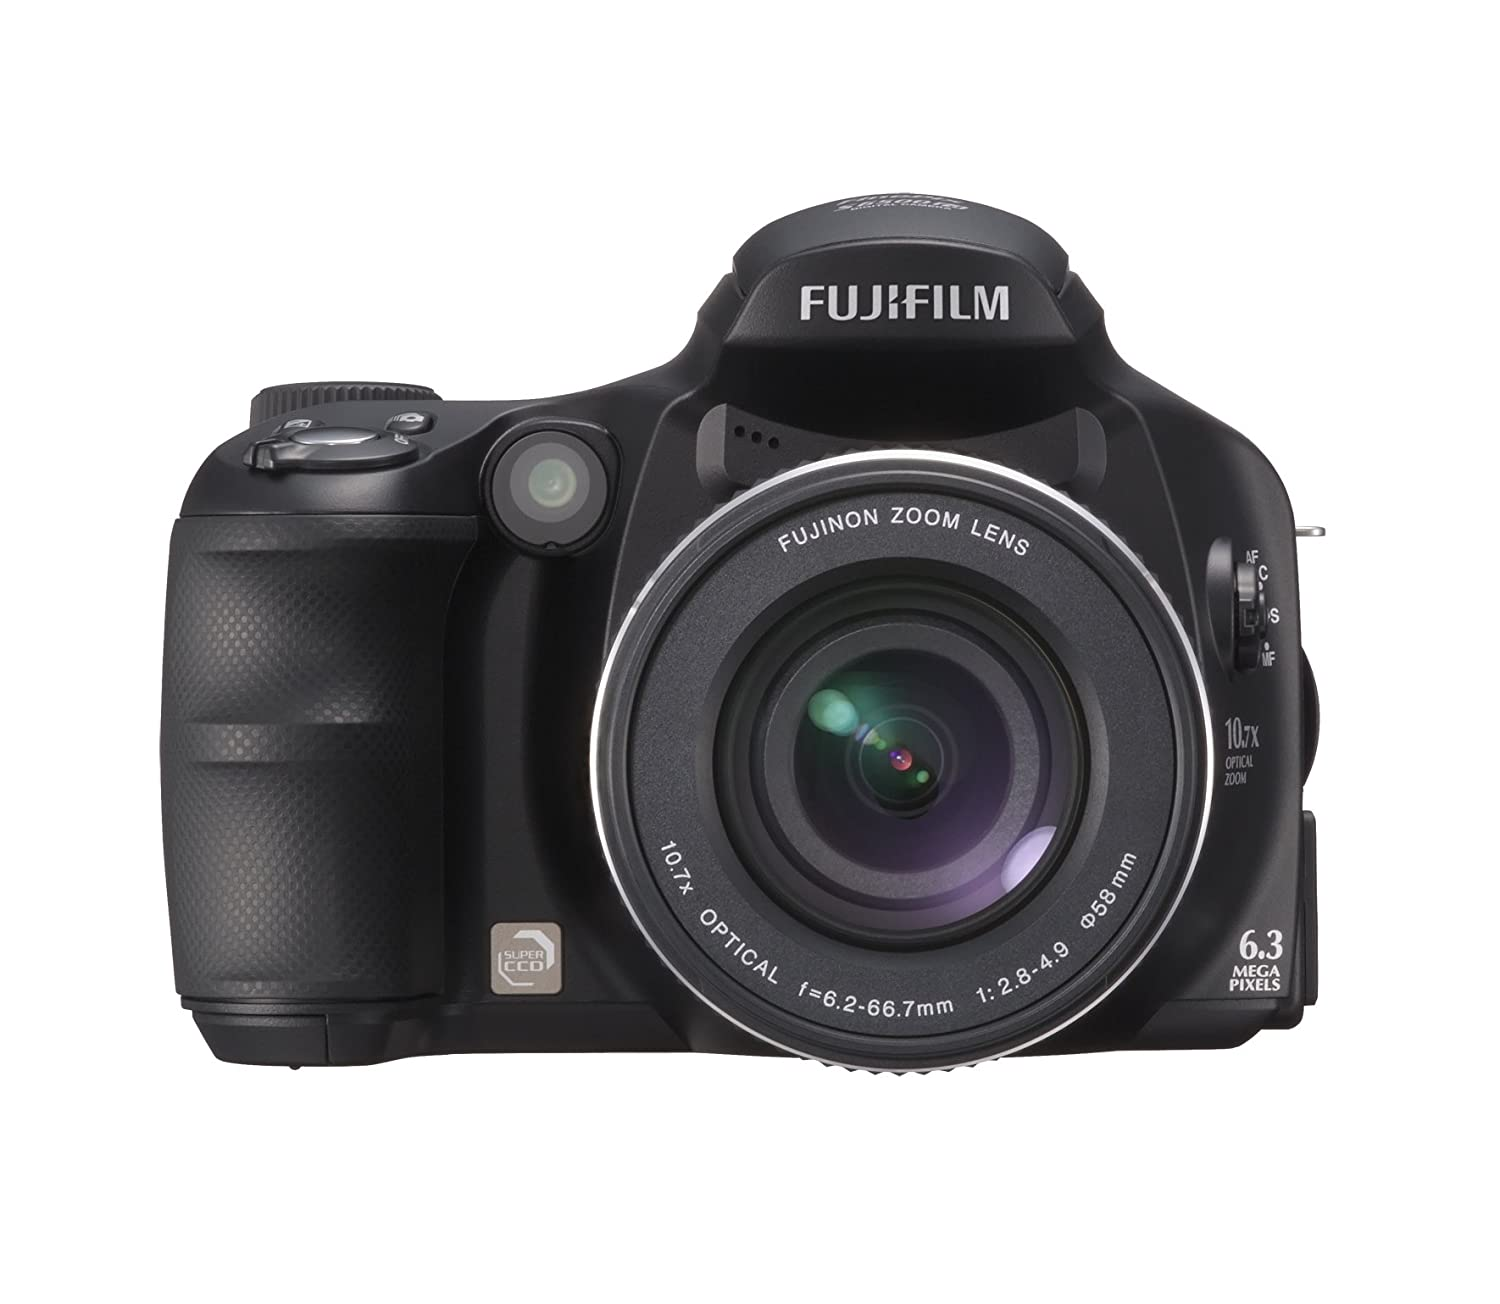 Amazon.com : Fujifilm Finepix S6000fd 6.3MP Digital Camera with 10.7x  Wide-Angle Optical Zoom with Picture Stabilization : Point And Shoot  Digital Cameras ...